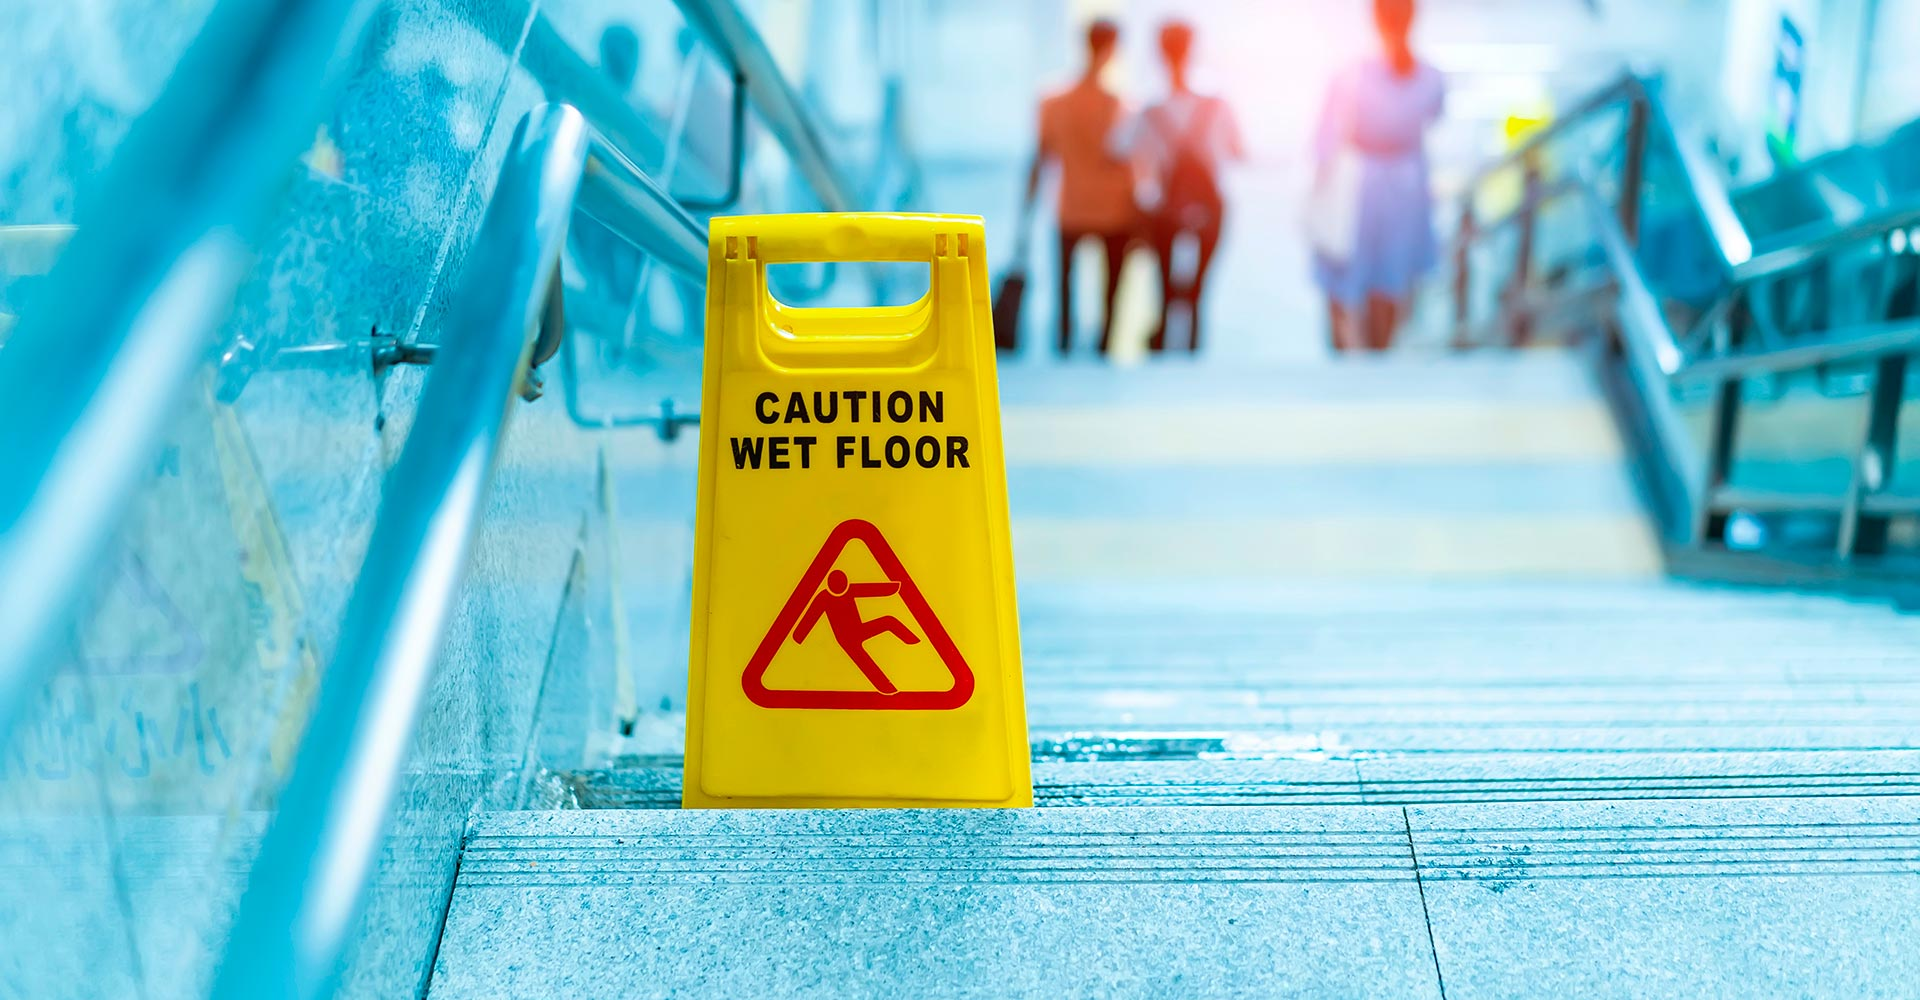 caution wet floor warning on steps in a public place